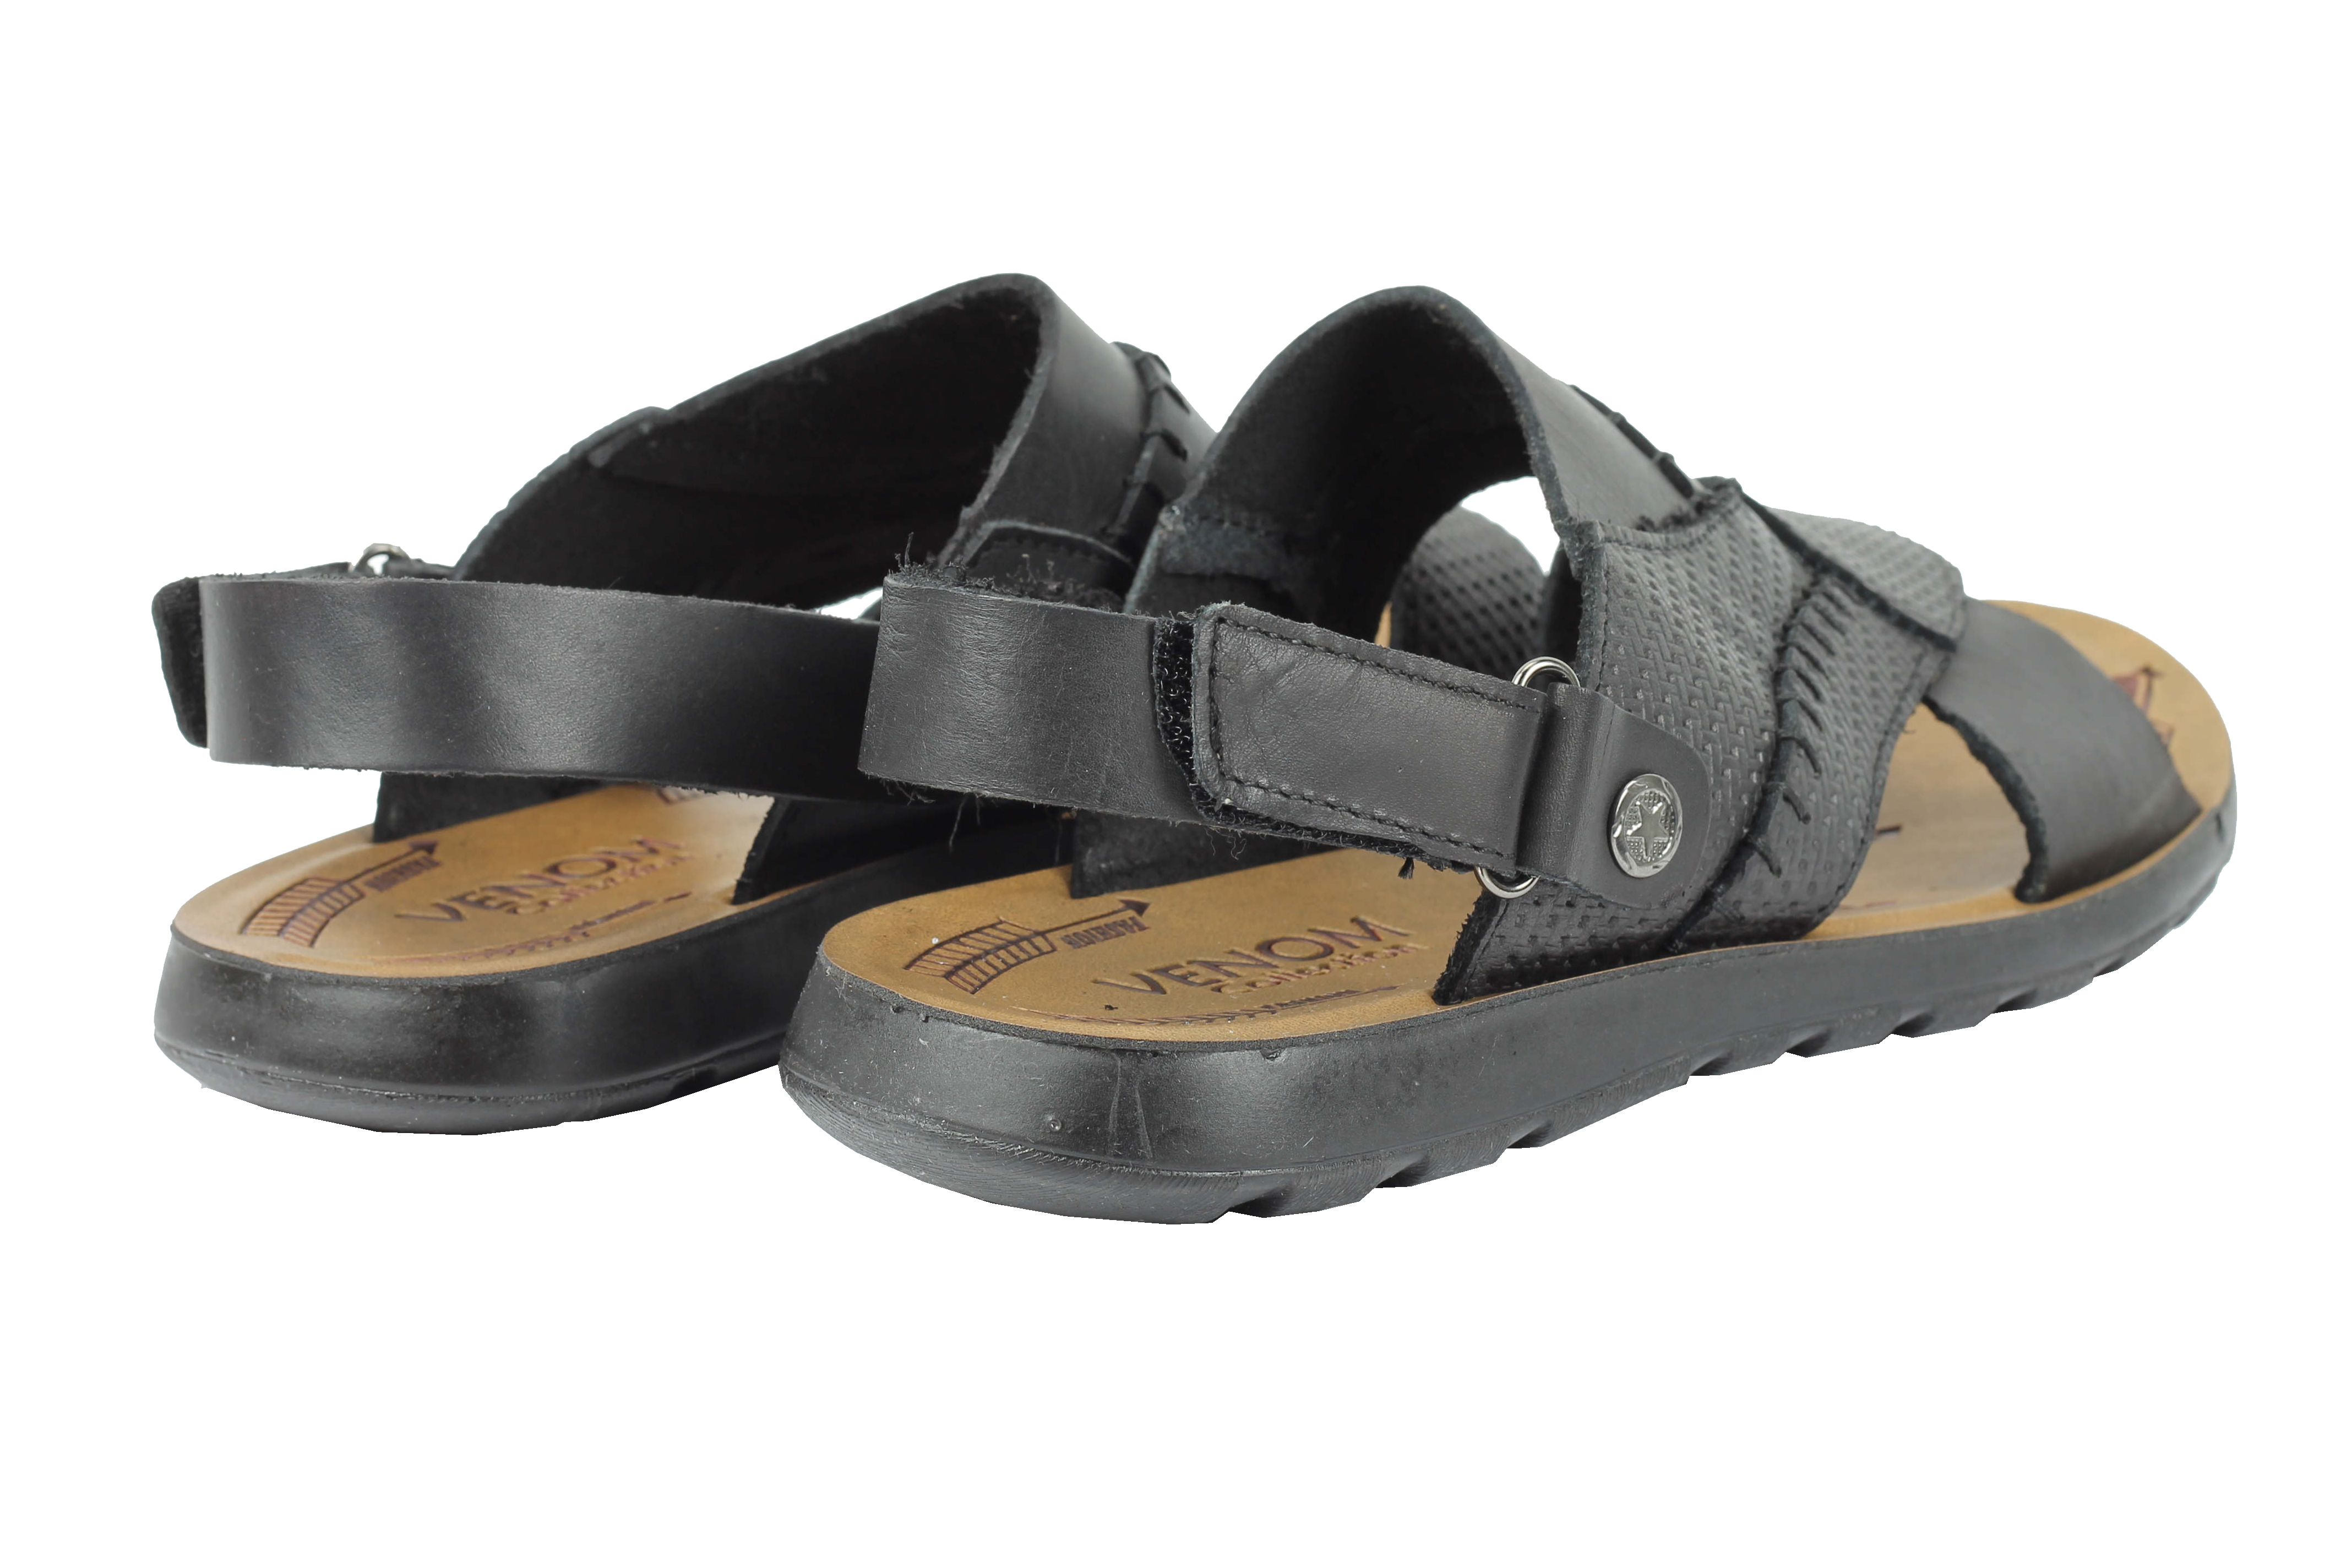 c2b3d9753ad85 Mens Real Leather Walking Sandals Black Brown Beach Mules Size 6 7 8 ...